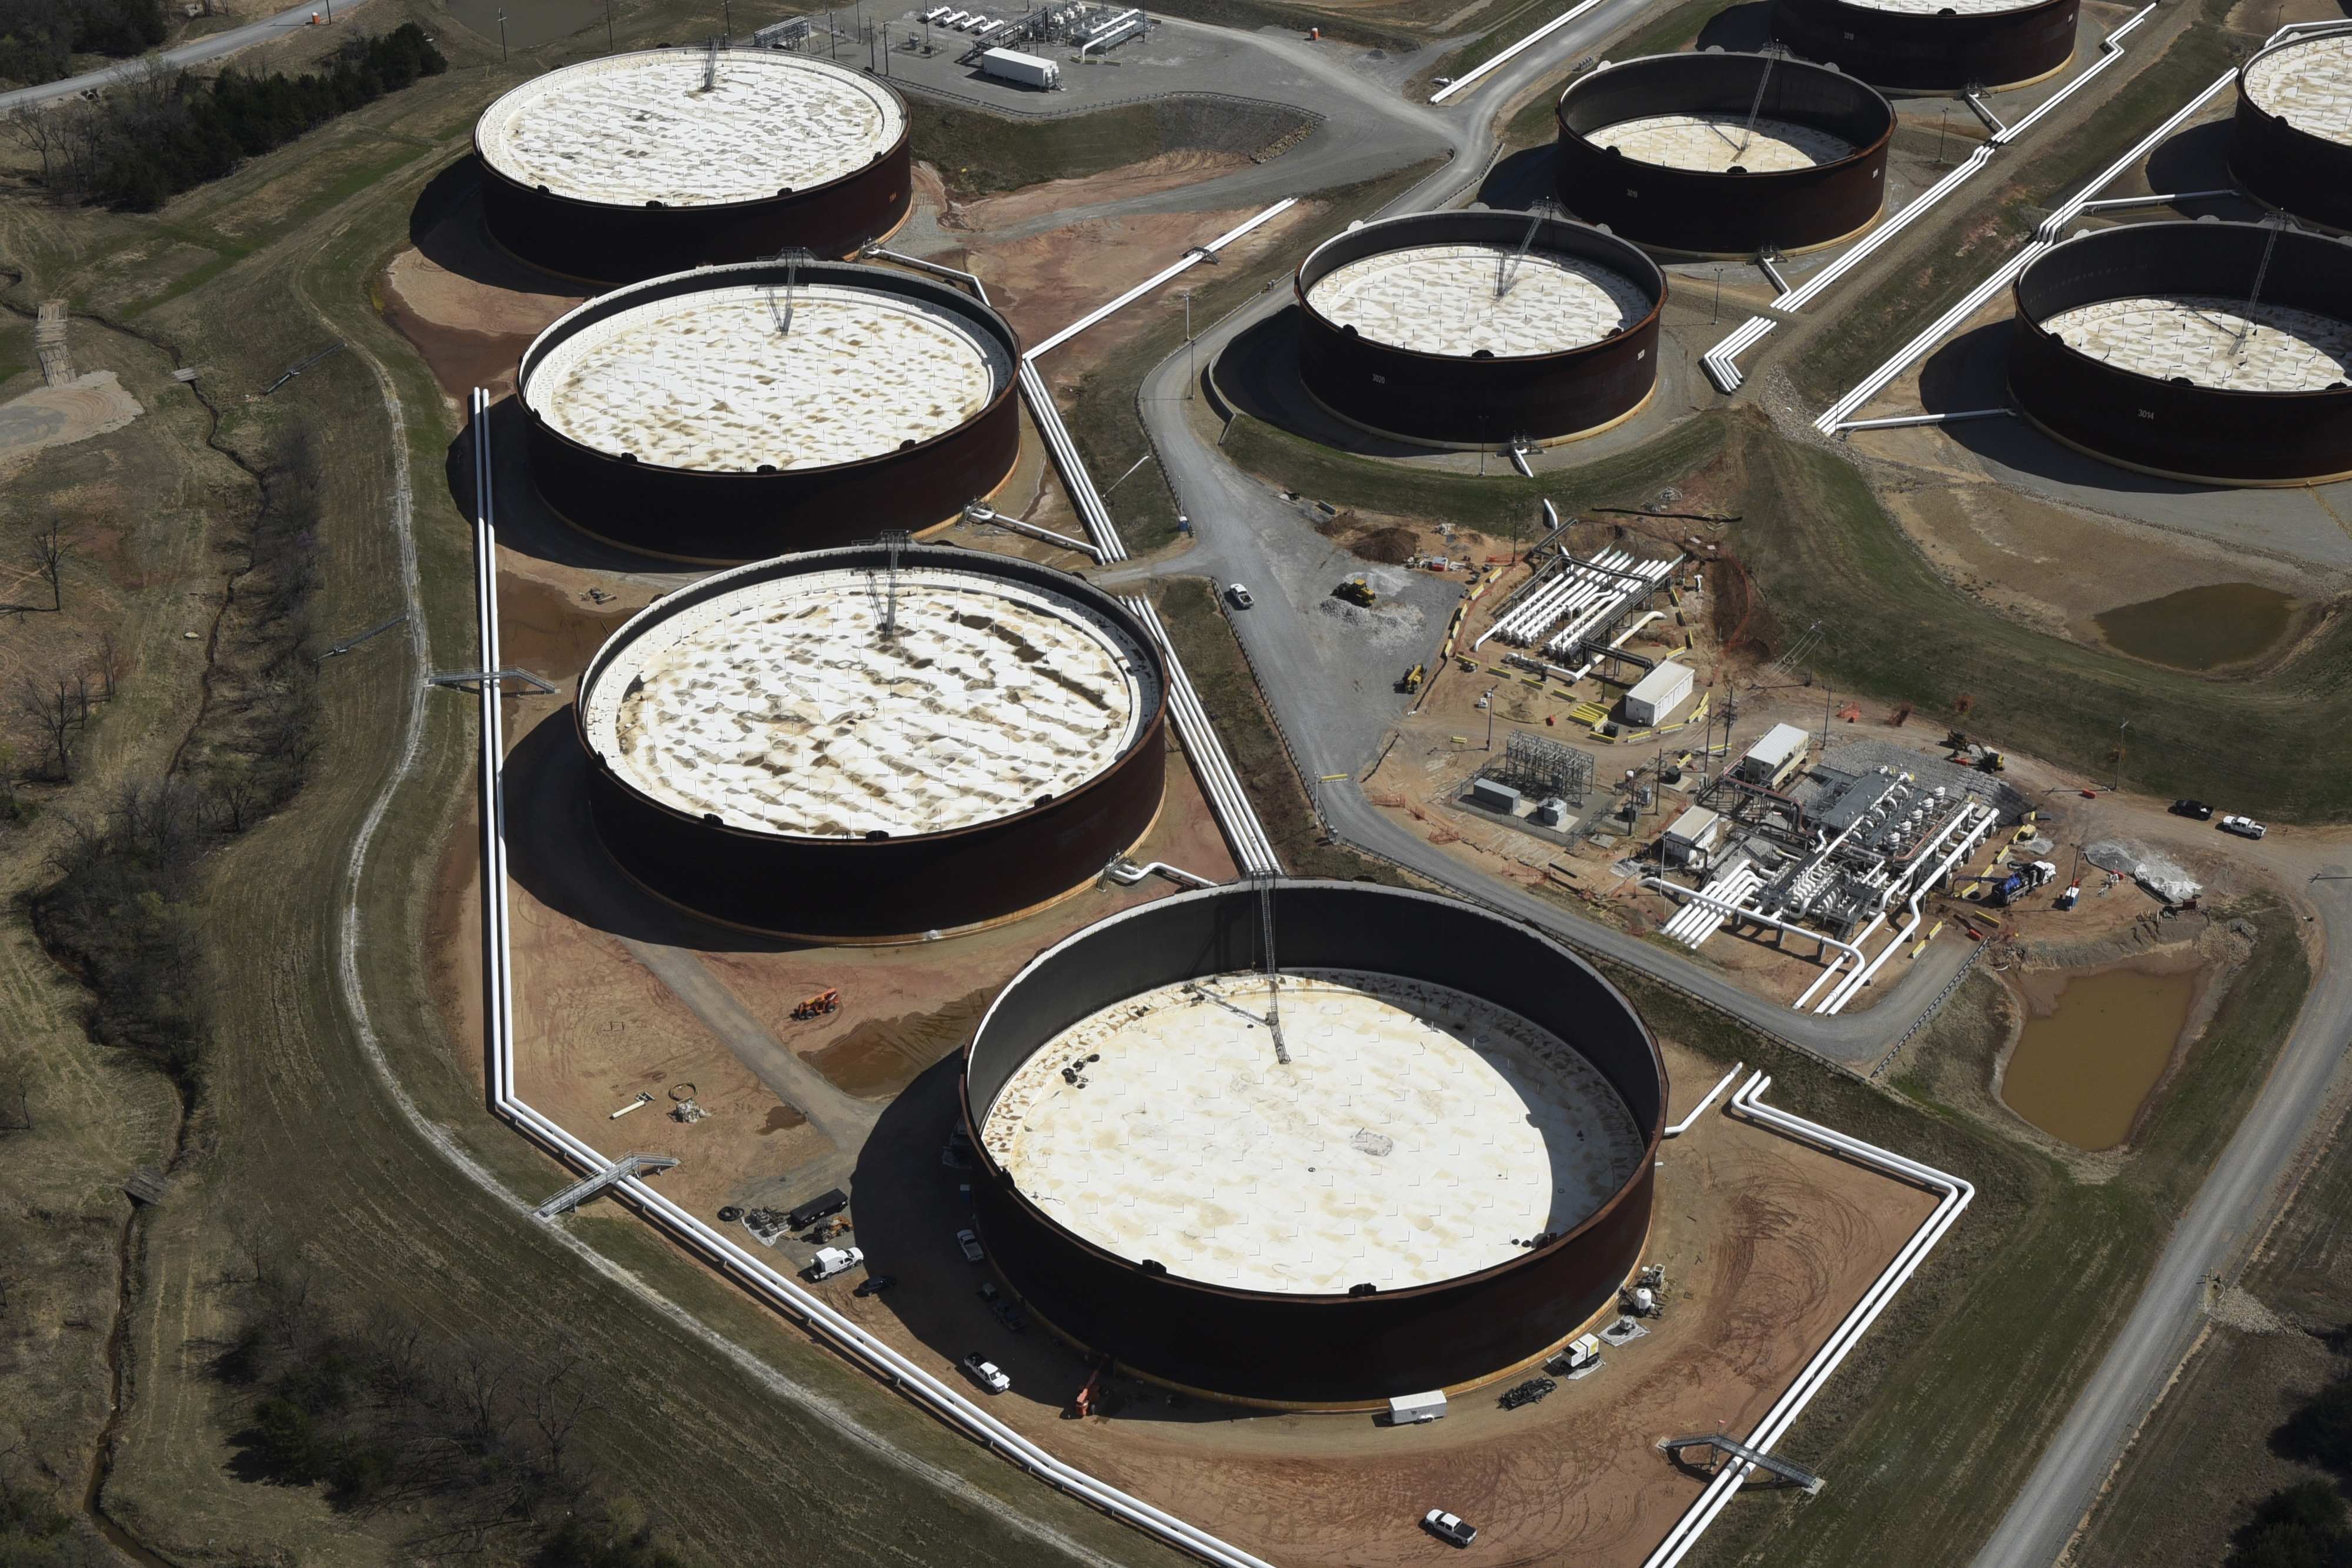 Crude oil storage tanks are seen from above at the Cushing oil hub in Cushing, Oklahoma, March 24, 2016. REUTERS/Nick Oxford